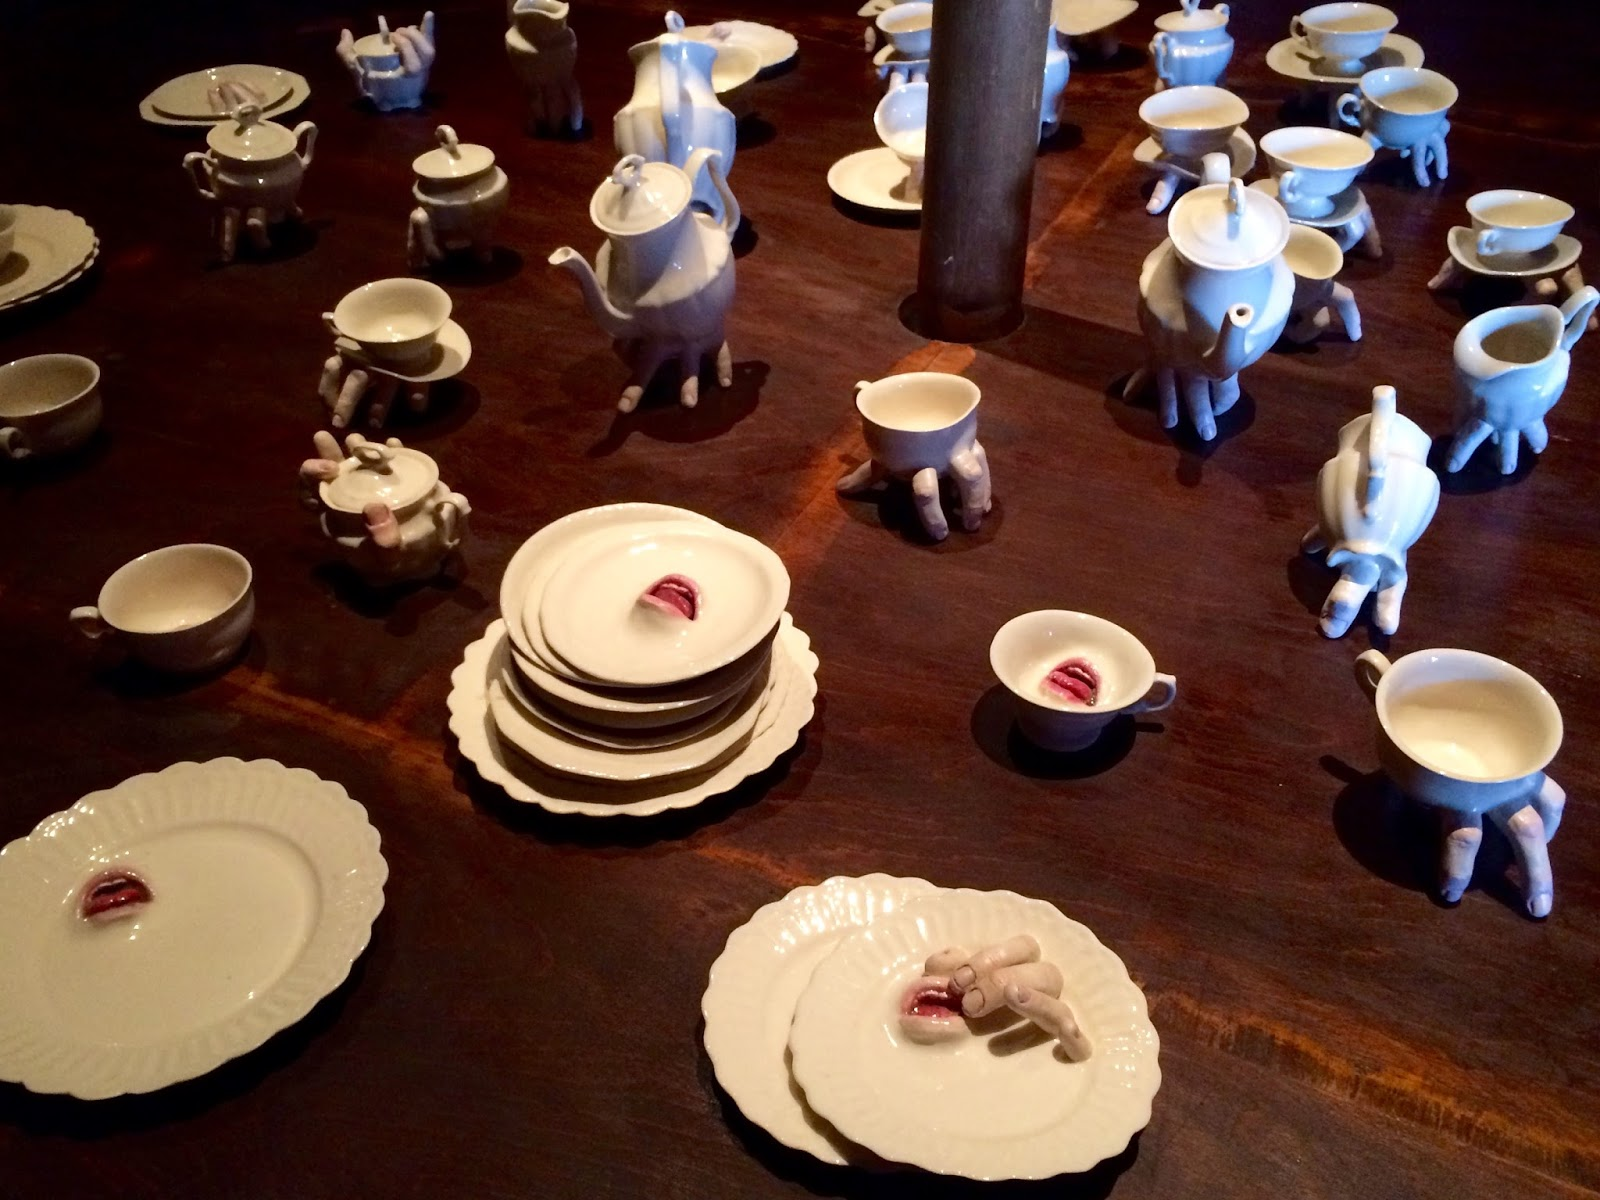 Dismaland installation by Banksy with Crockery